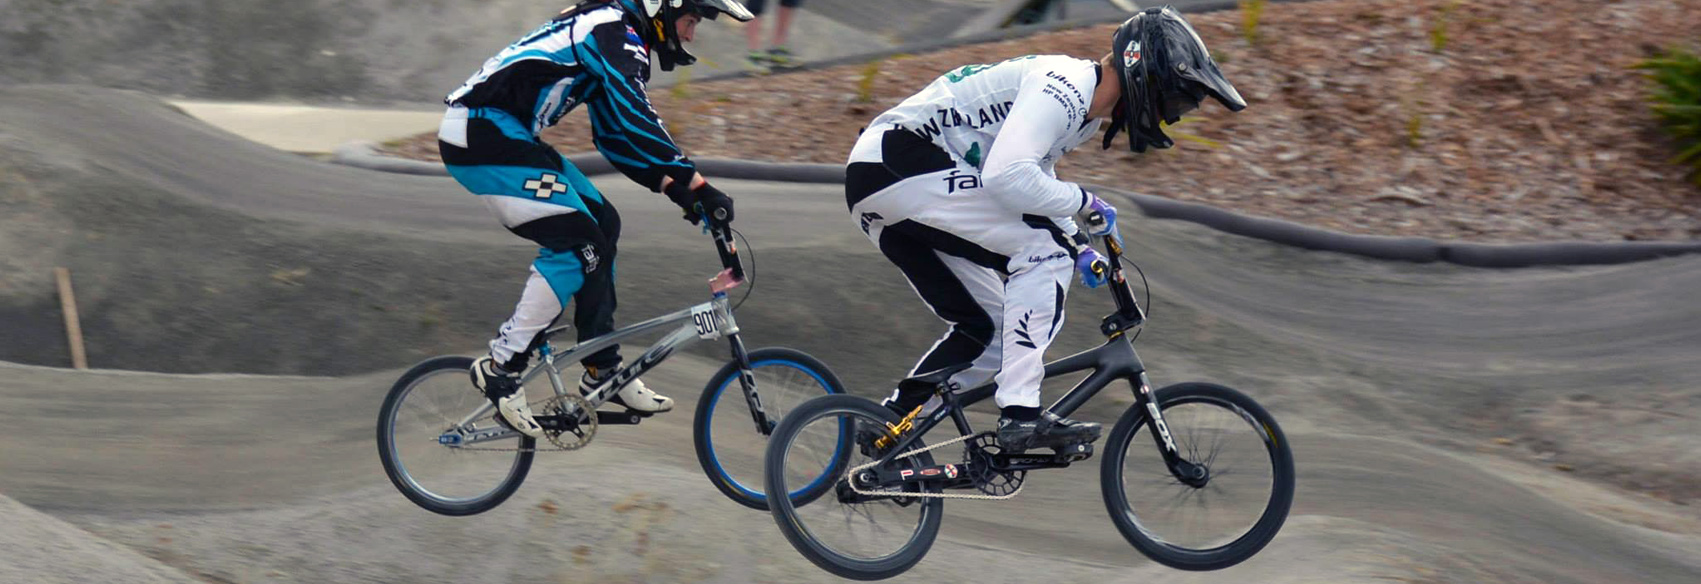 Trent Jones - Trackside BMX Photos NZ